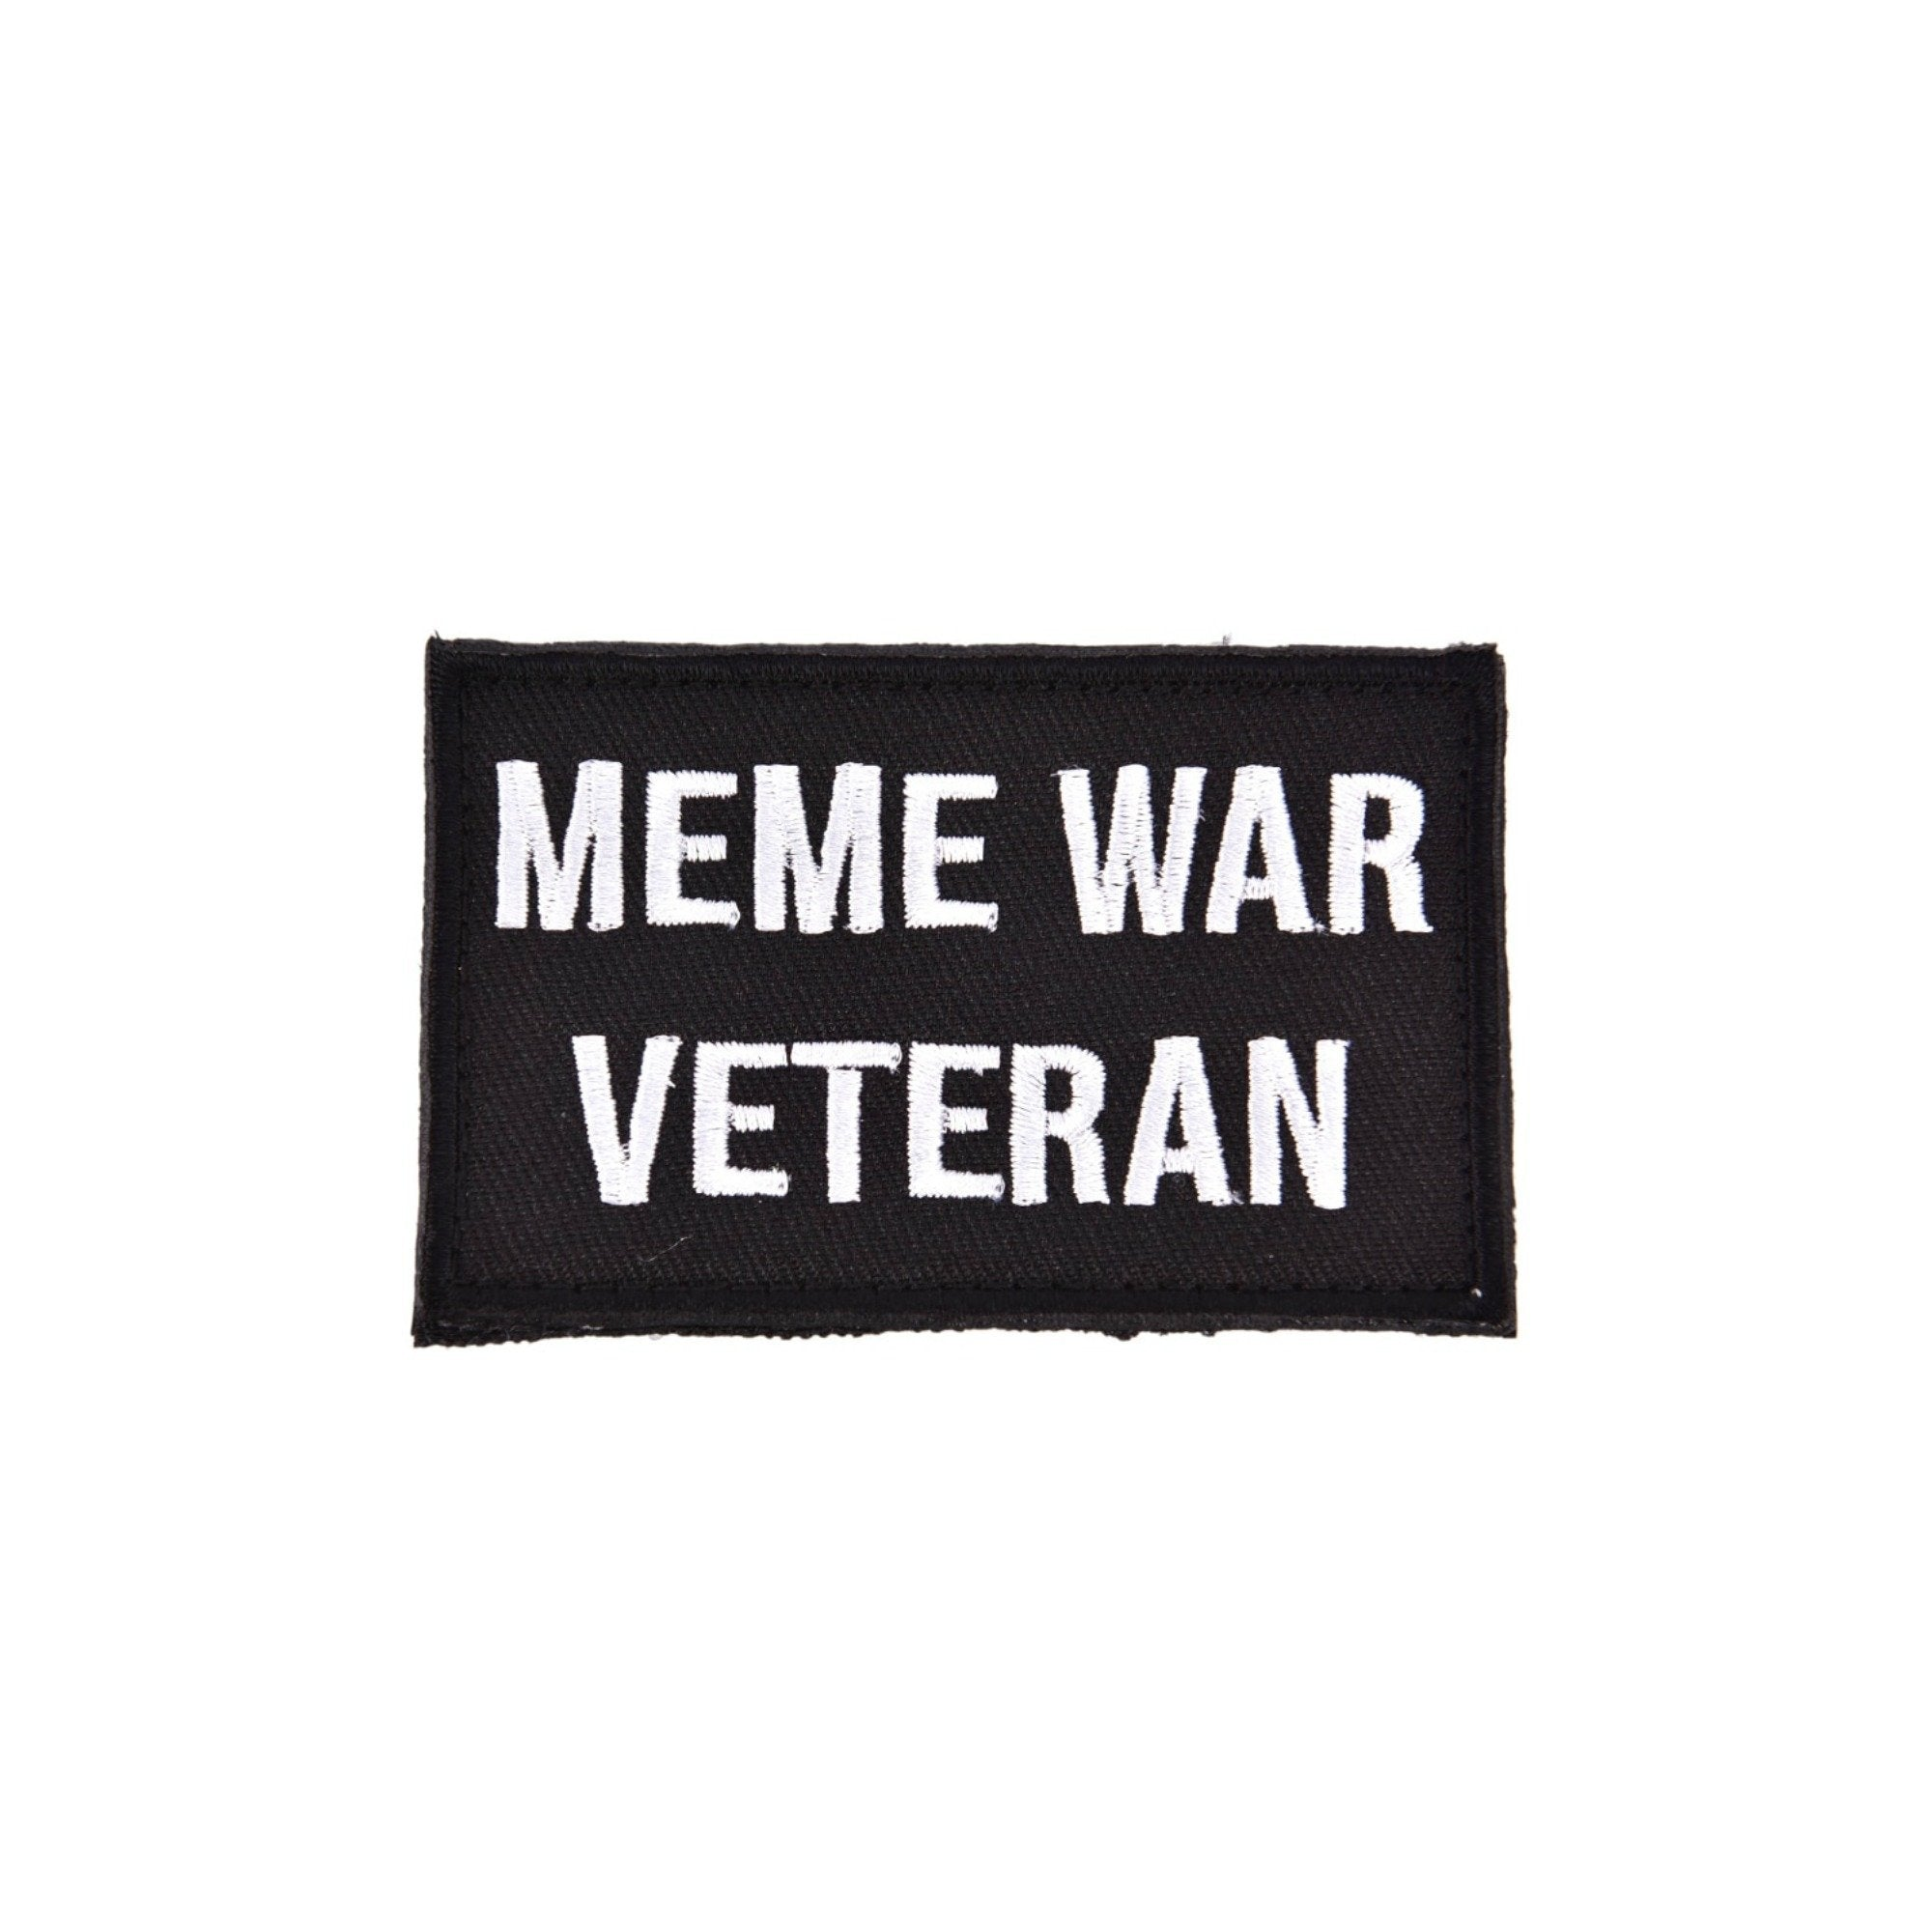 Meme War Veteran Sew On Patch - Minimum Mouse